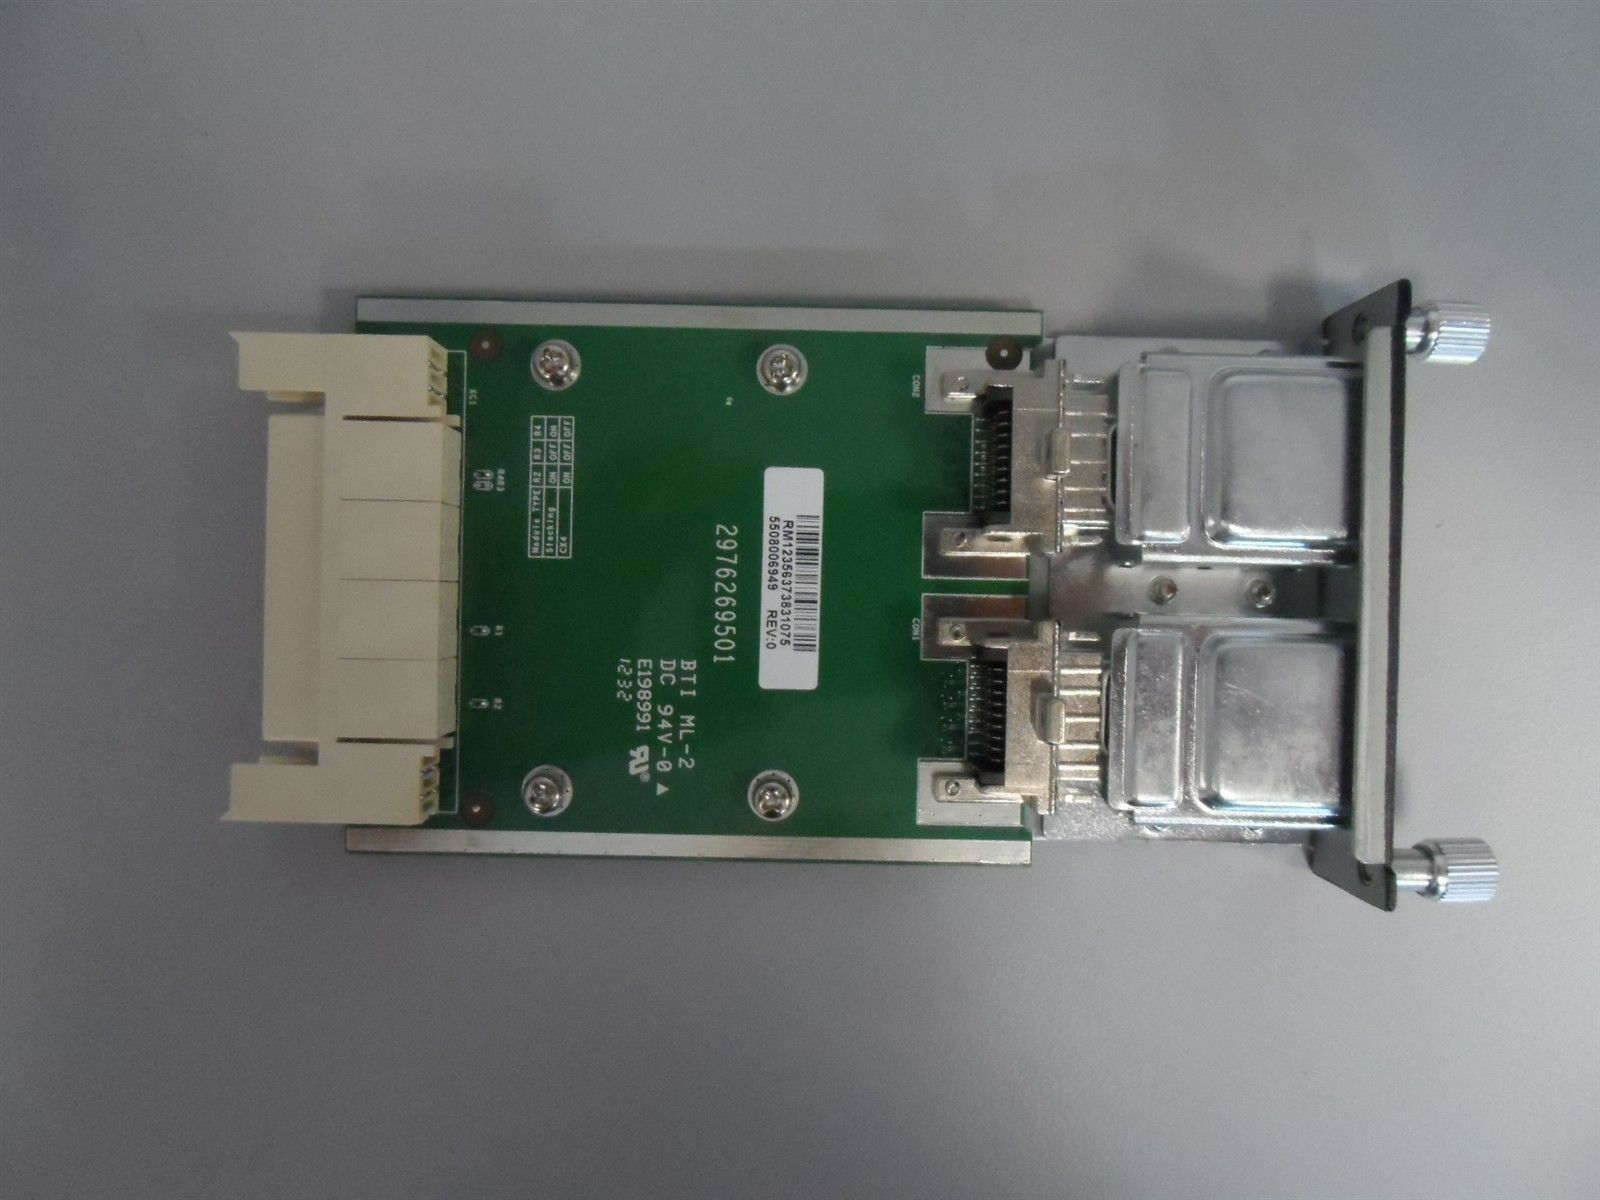 Dell PowerConnect YY741 ND292 10GbE Stacking Module 0YY741 6224 6248 6224P 6248P